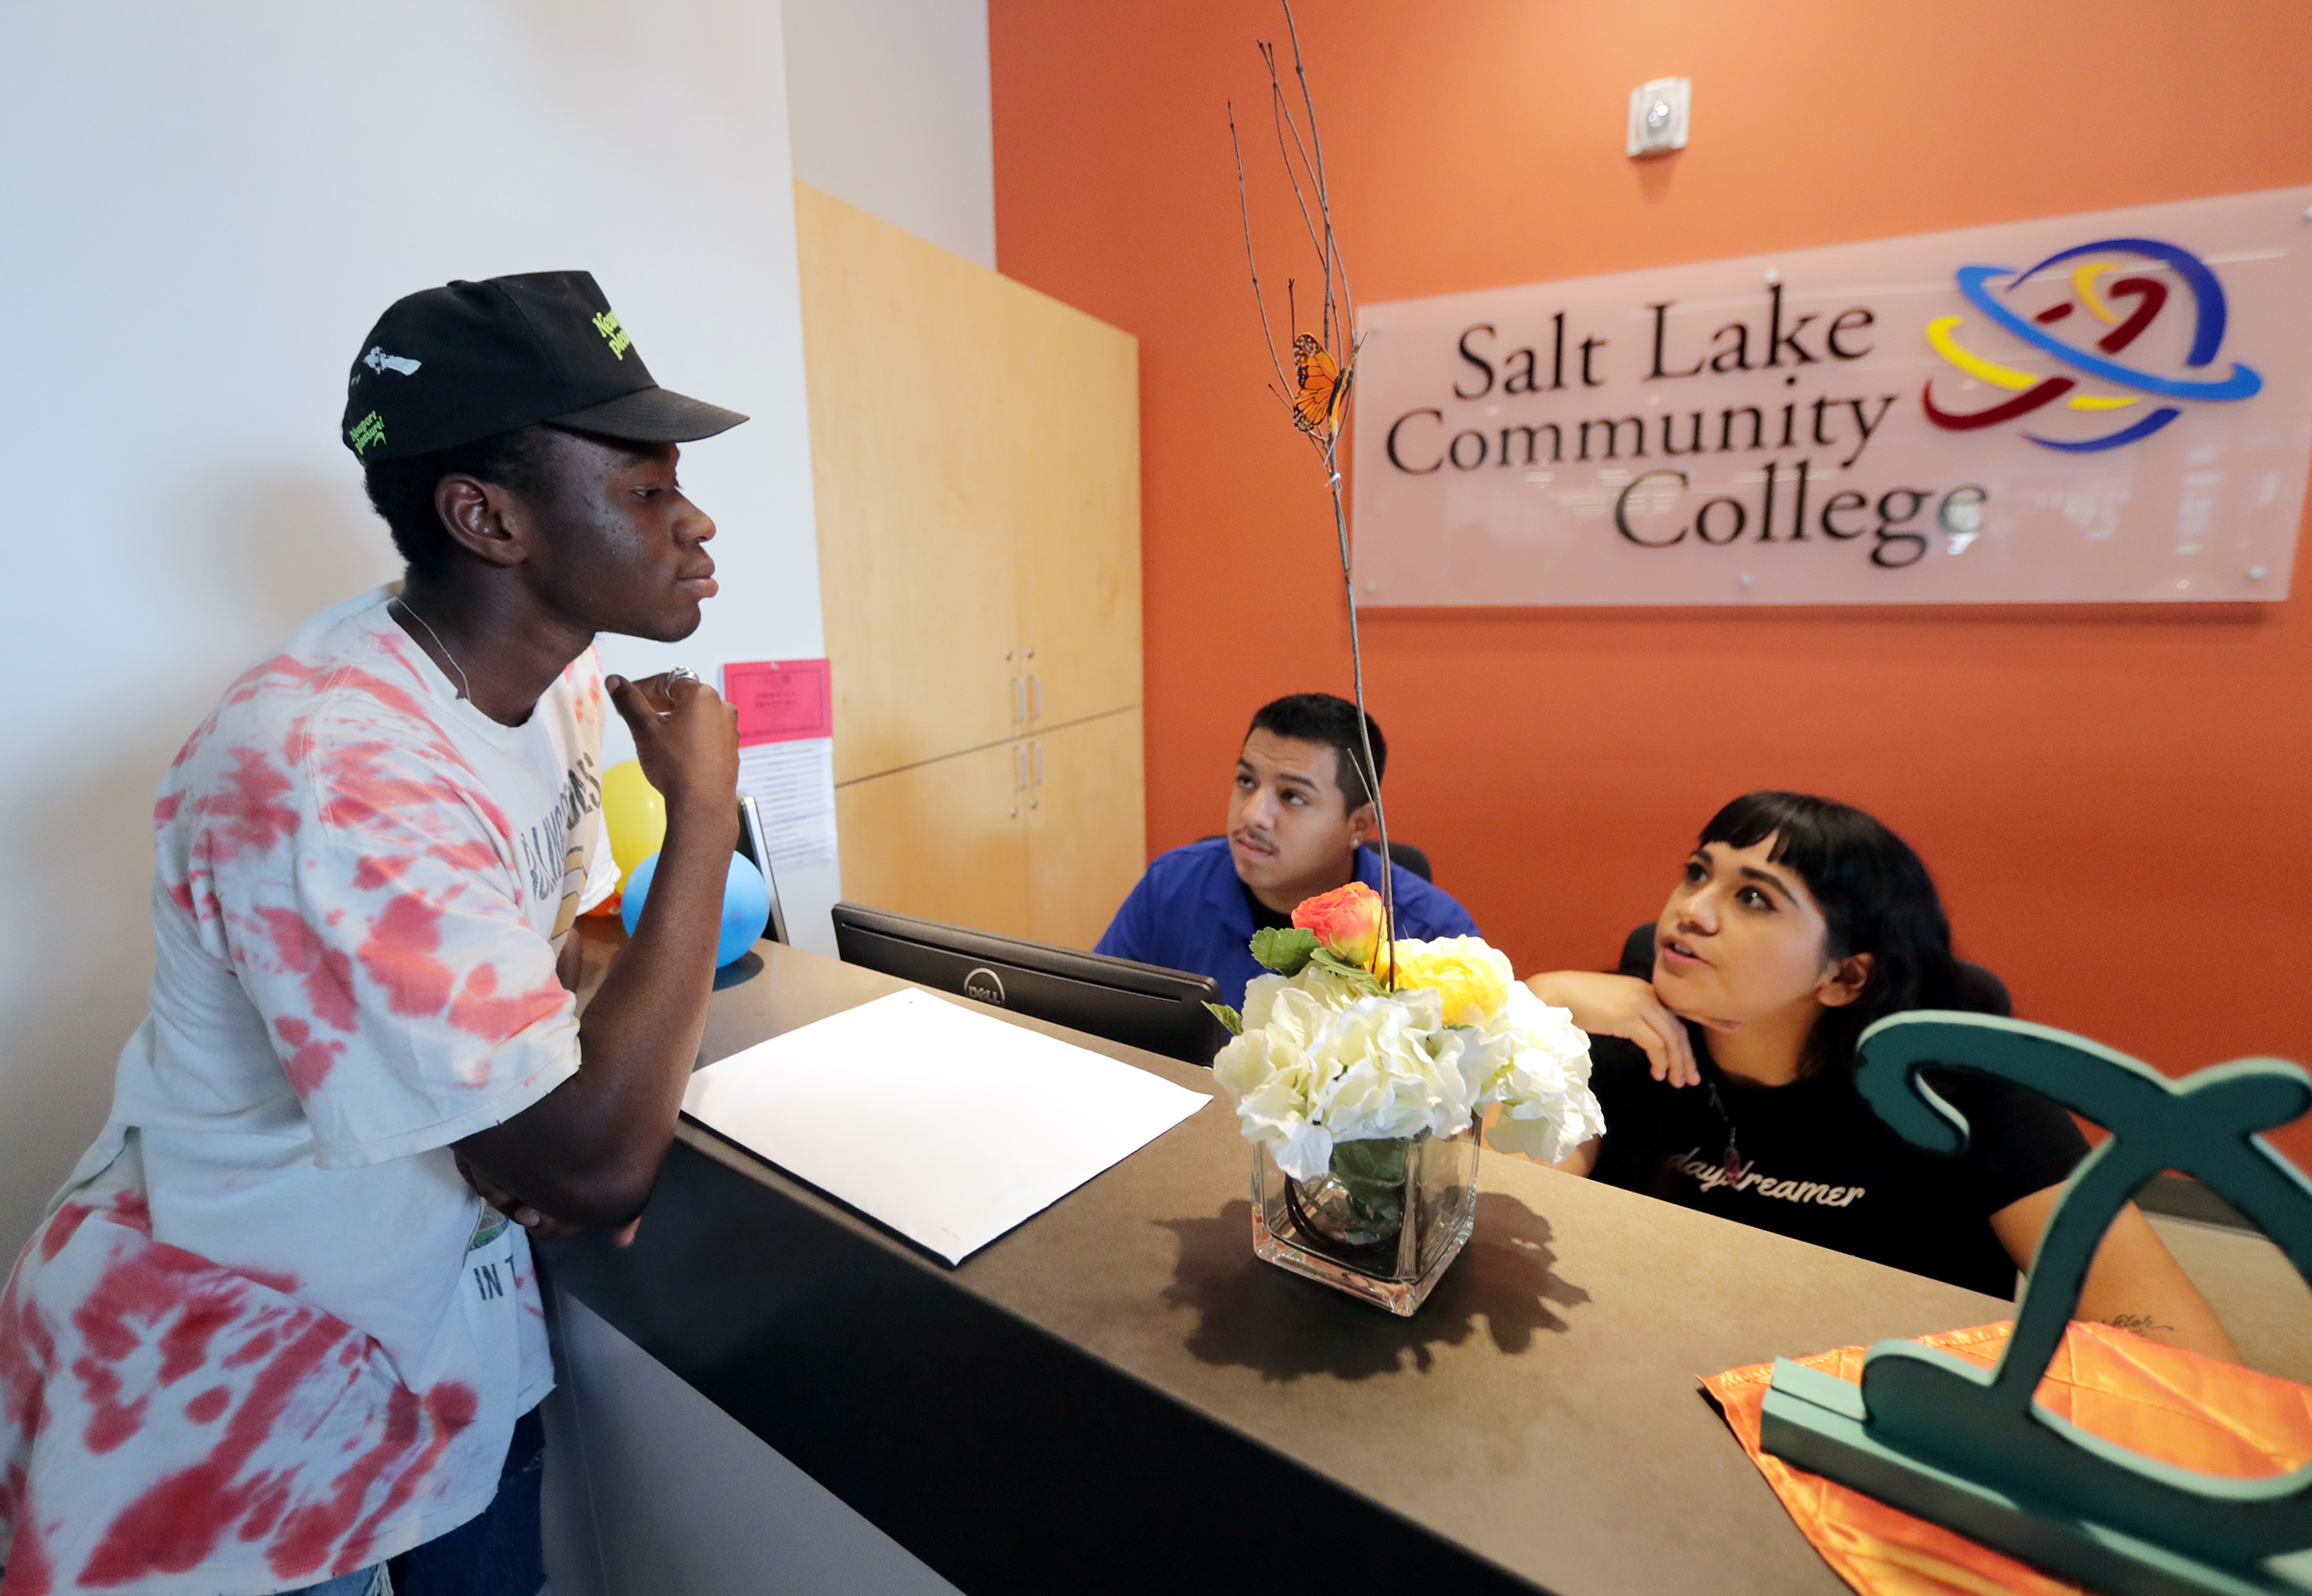 While looking for information about school, Elliott Tackie-Yarboi talks with Ricardo Hernandez and Brenda Santoyo at Salt Lake Community College's West Valley Center on Friday, Aug. 2, 2019. The center was intentionally opened in West Valley to bring coll